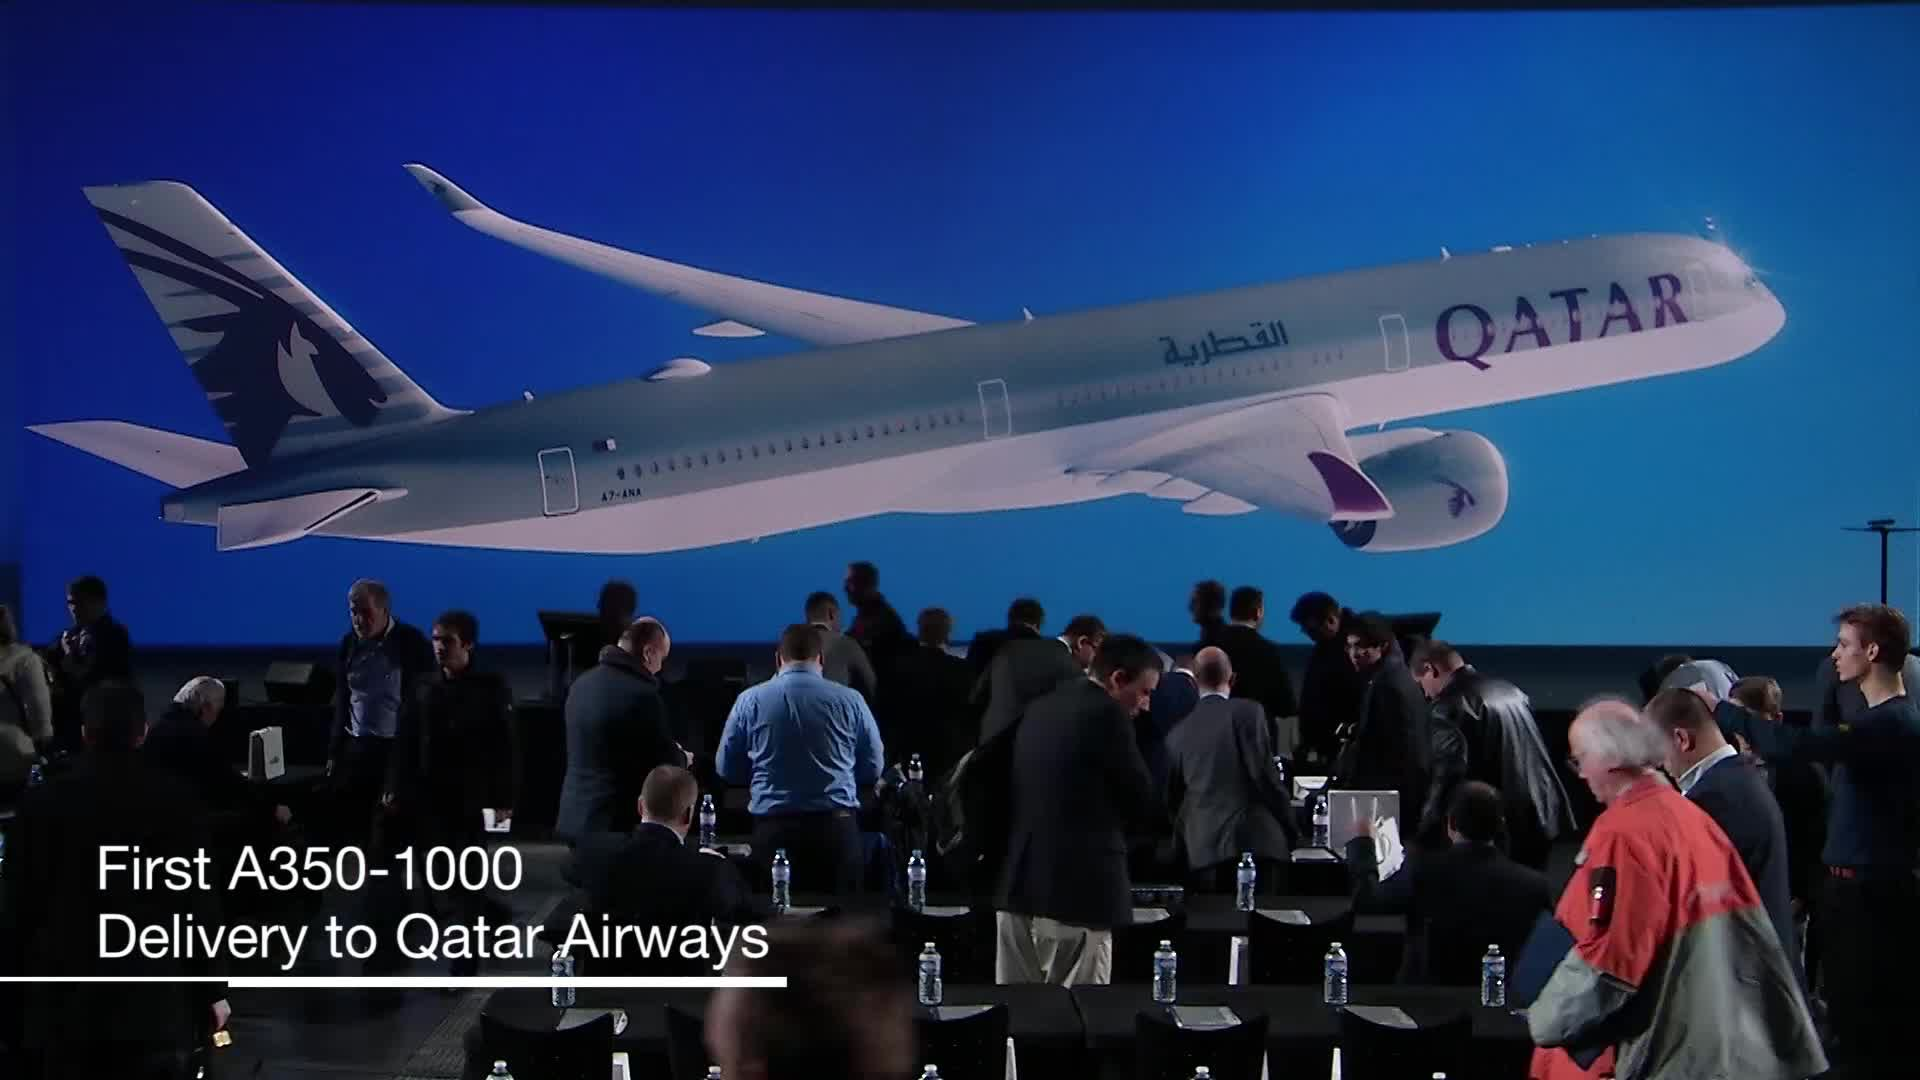 Highlights: First A350-1000 delivery to Qatar Airways